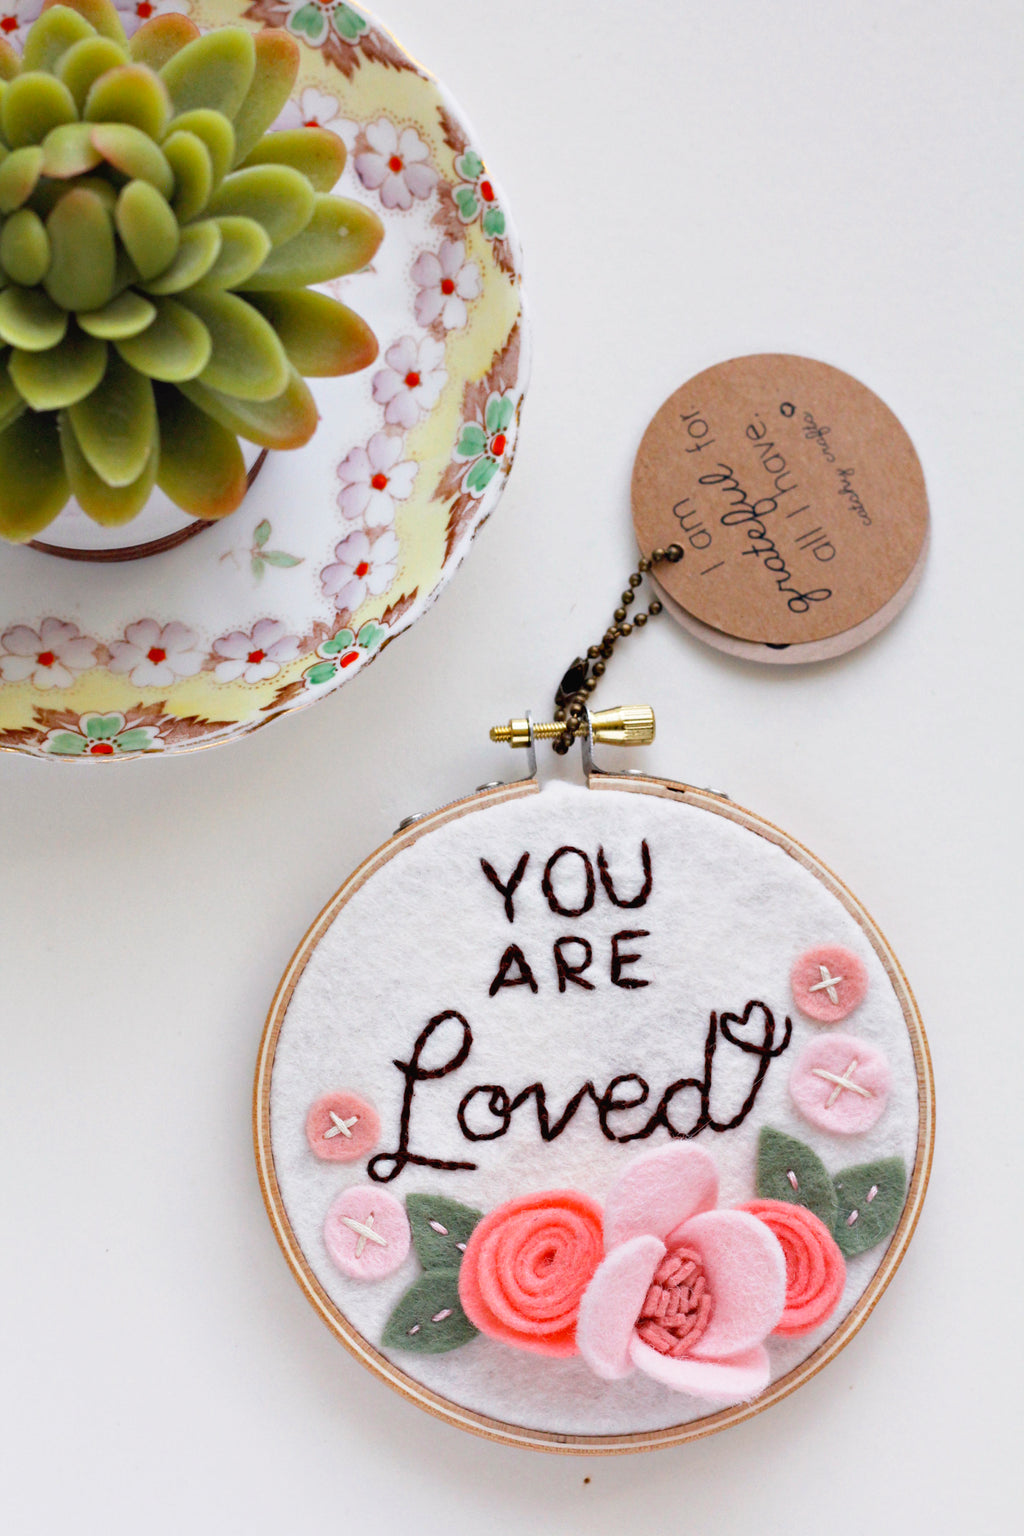 You Are Loved Embroidery Hoop Art  - 4 inch